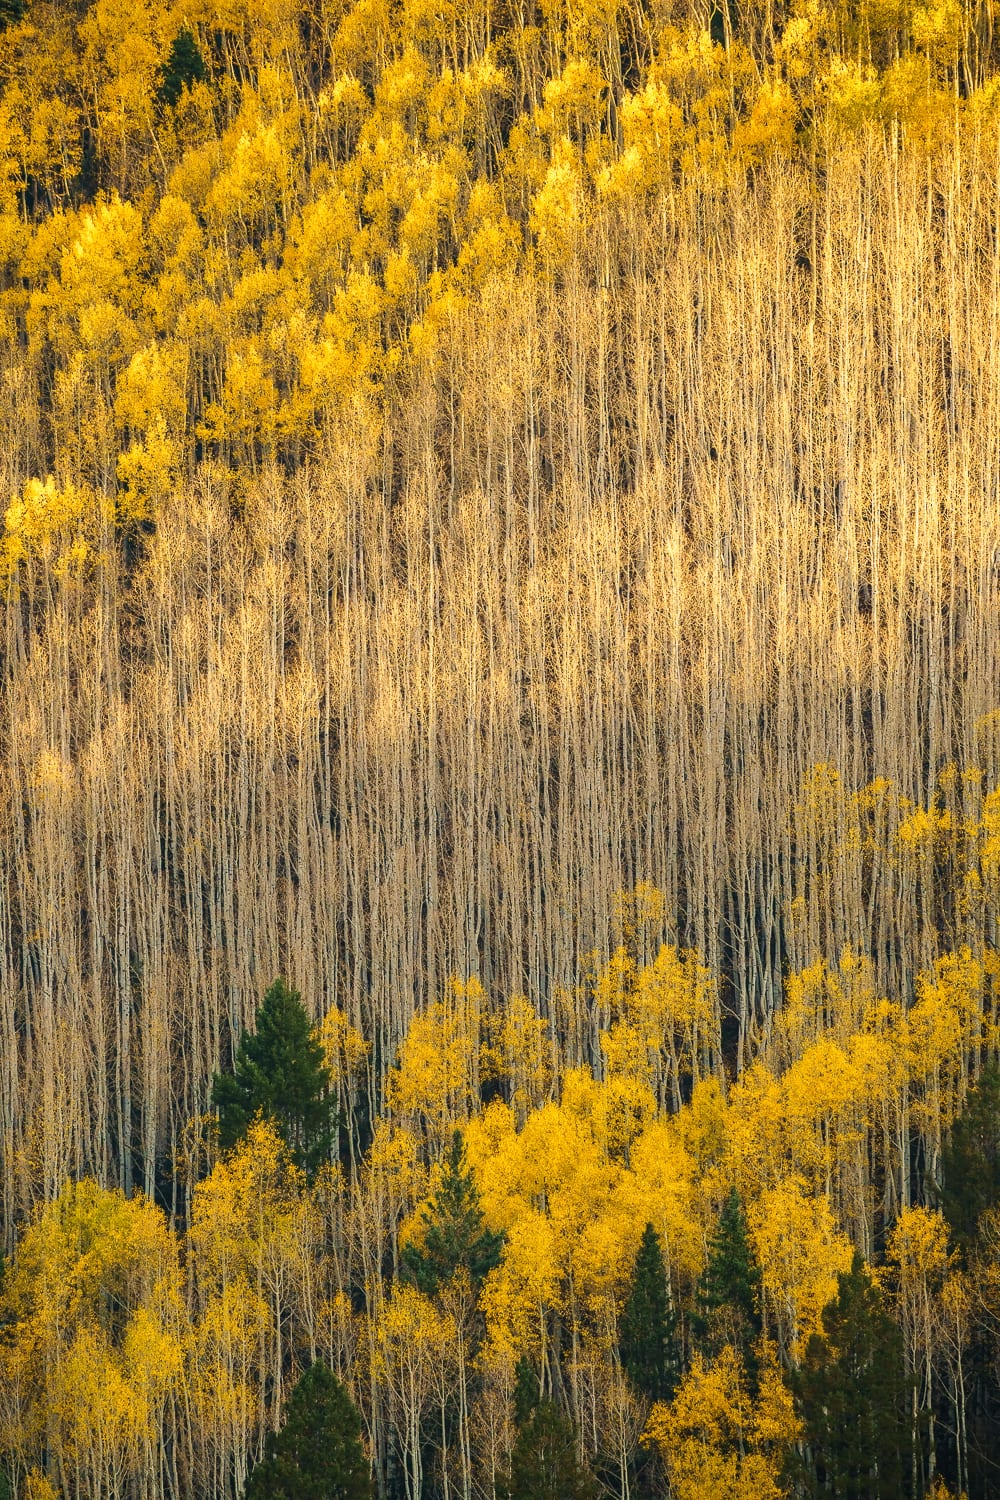 Stand of aspen, some with yellow leaves, some without.